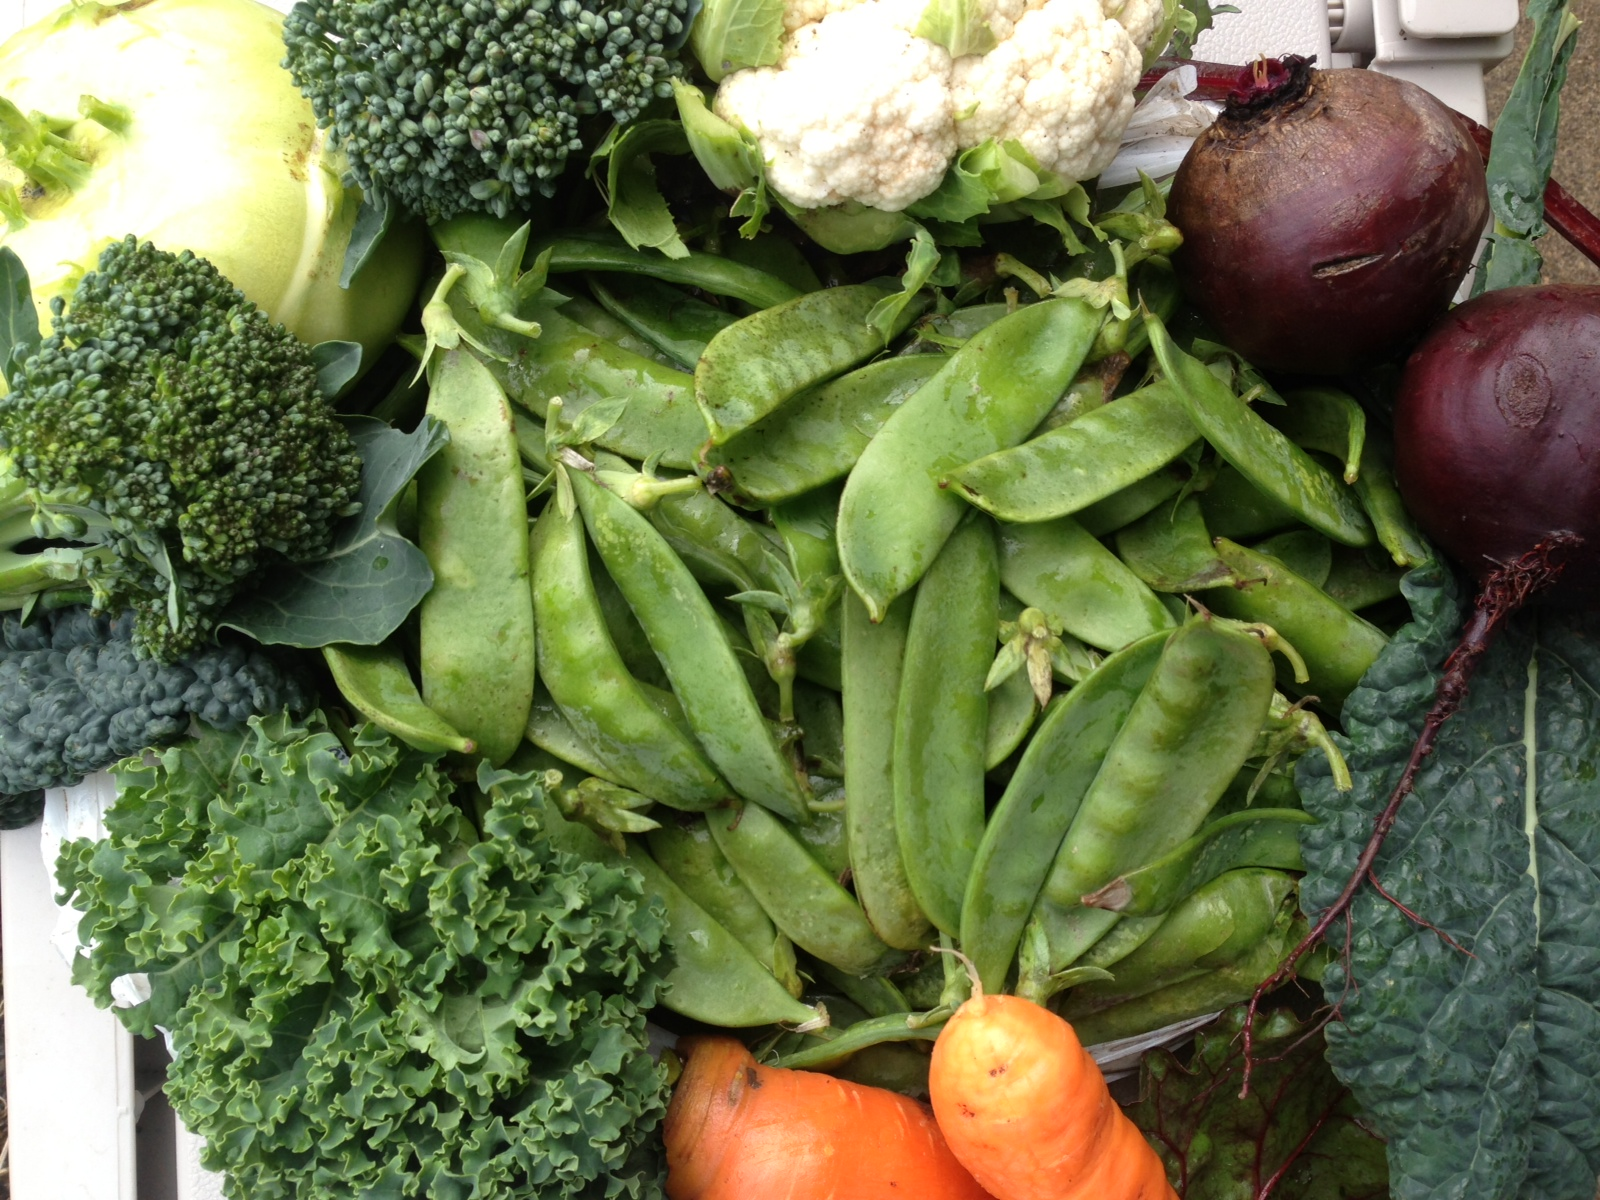 Veggies planted in the summer and fall, then harvested just in time for Thanksgiving.